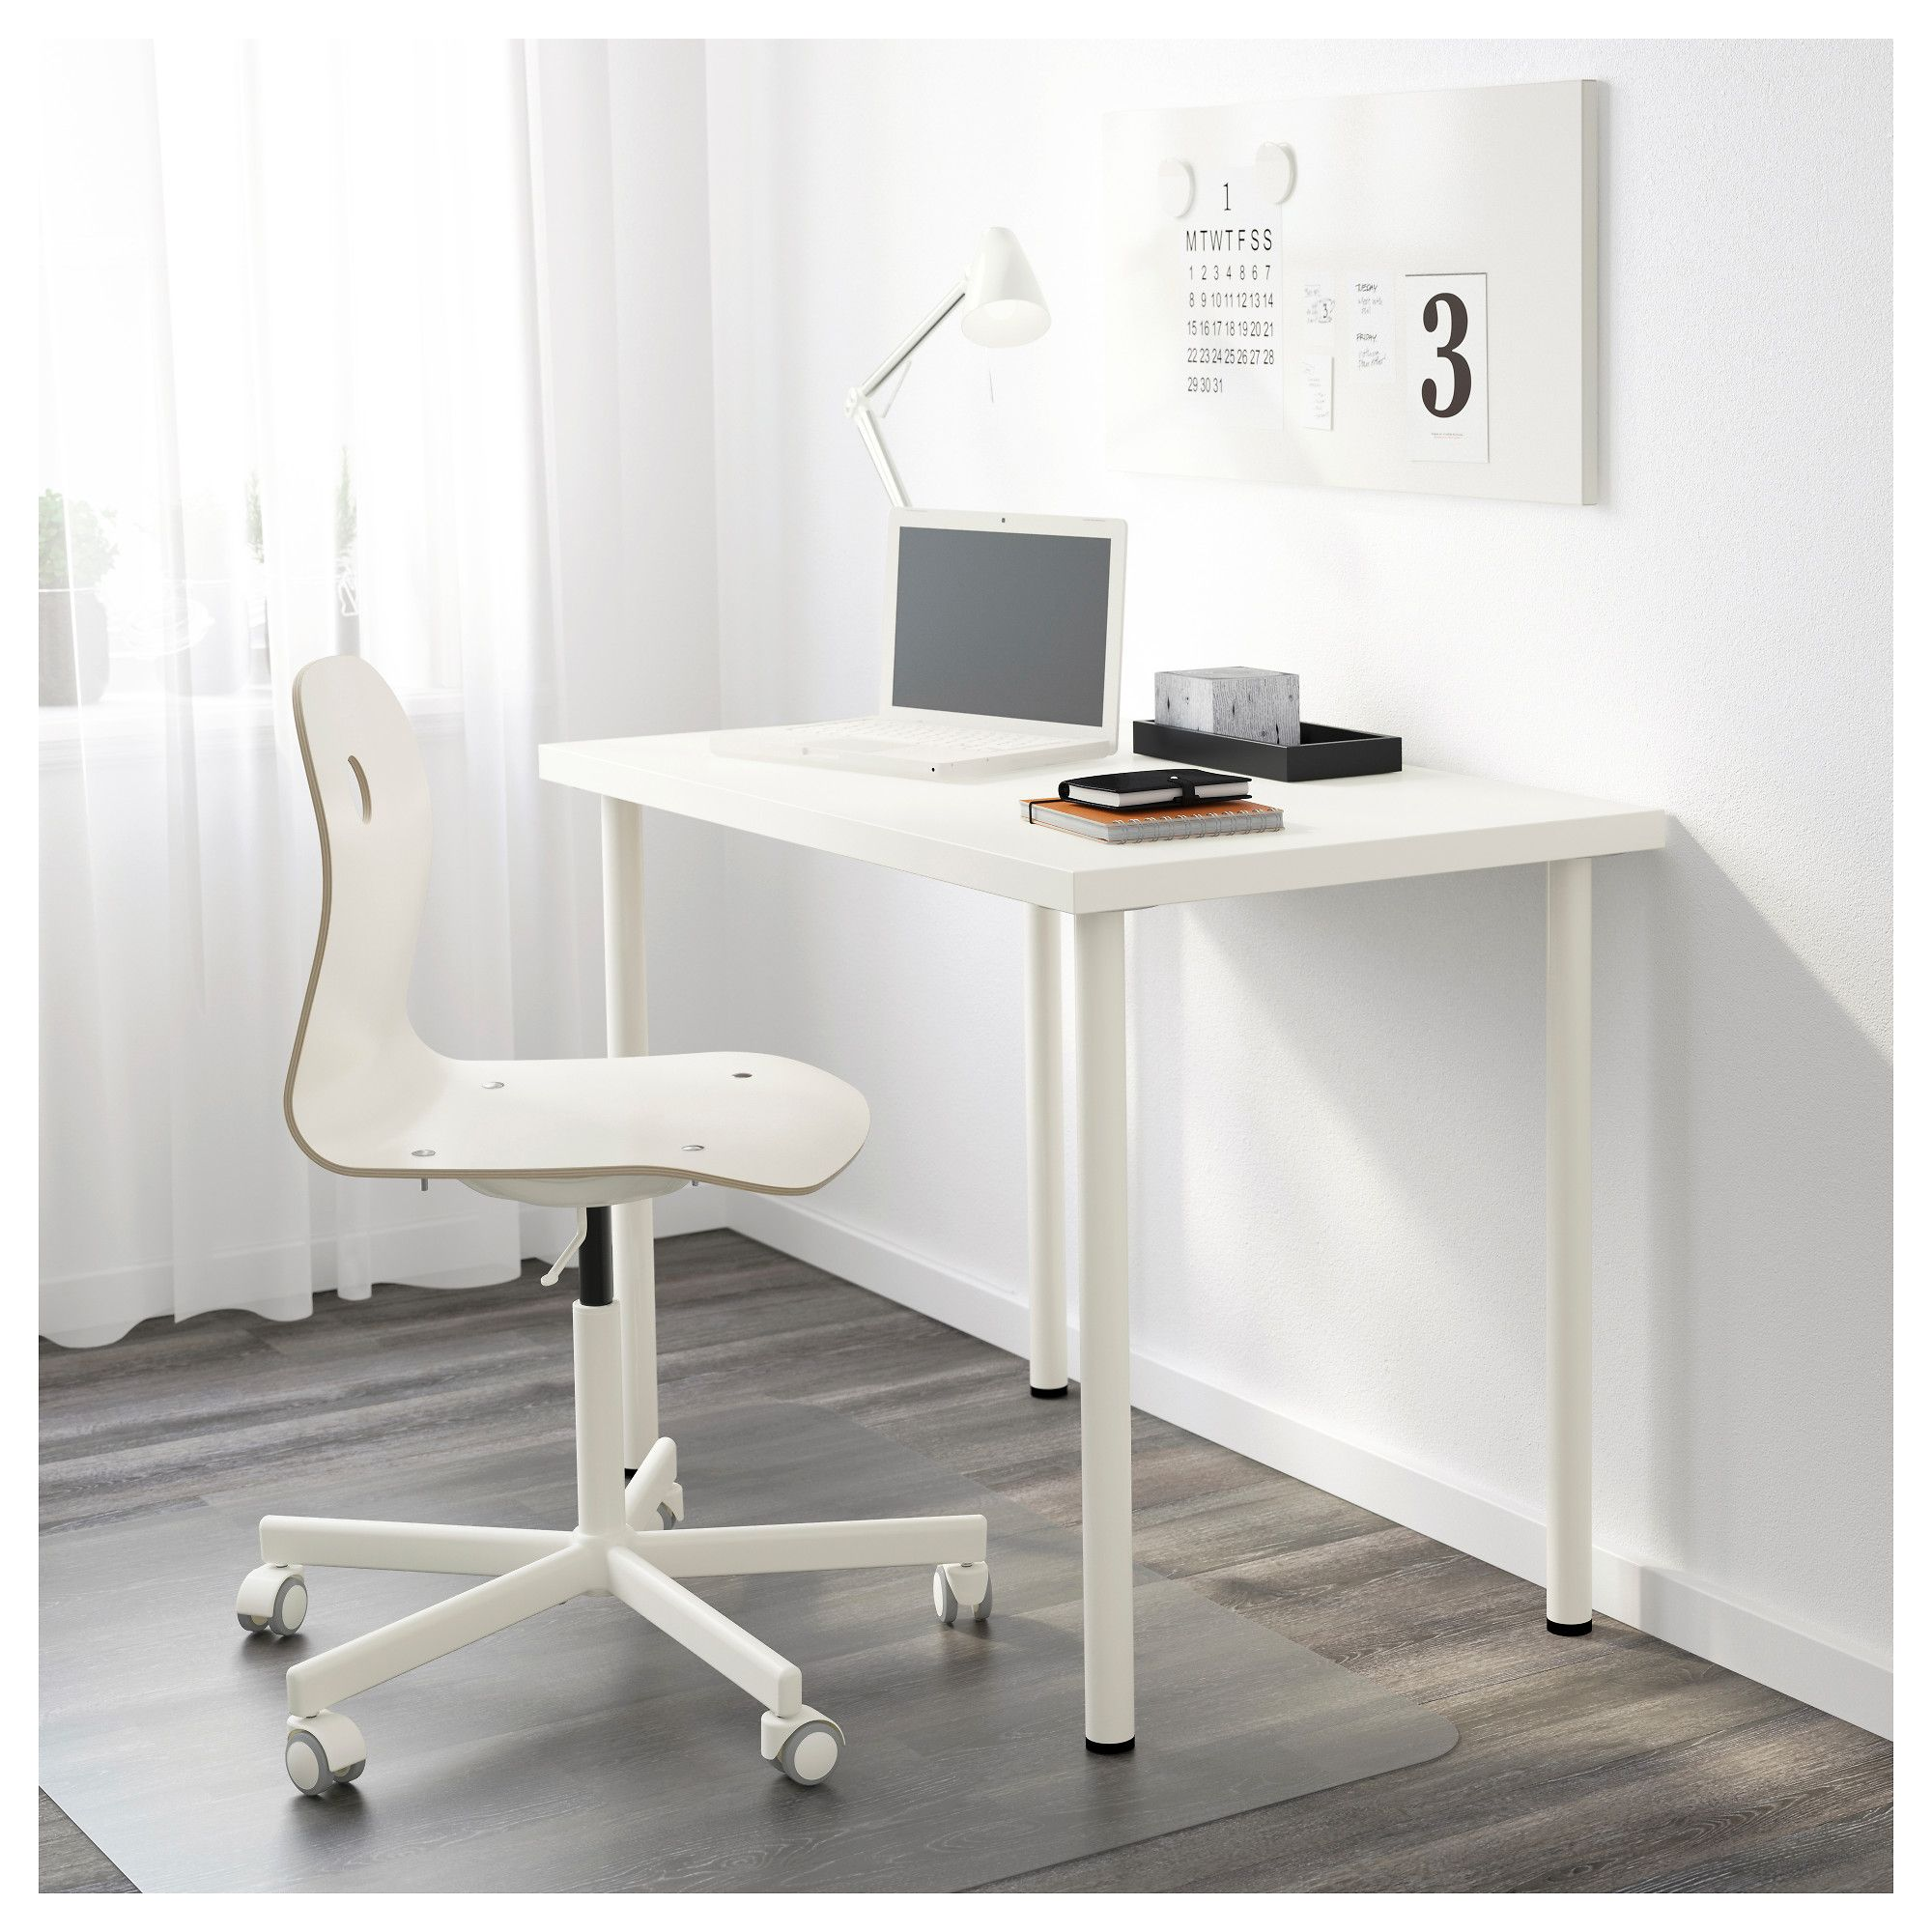 like watch but volmar comfortable office chair an a rock youtube ikea expensive